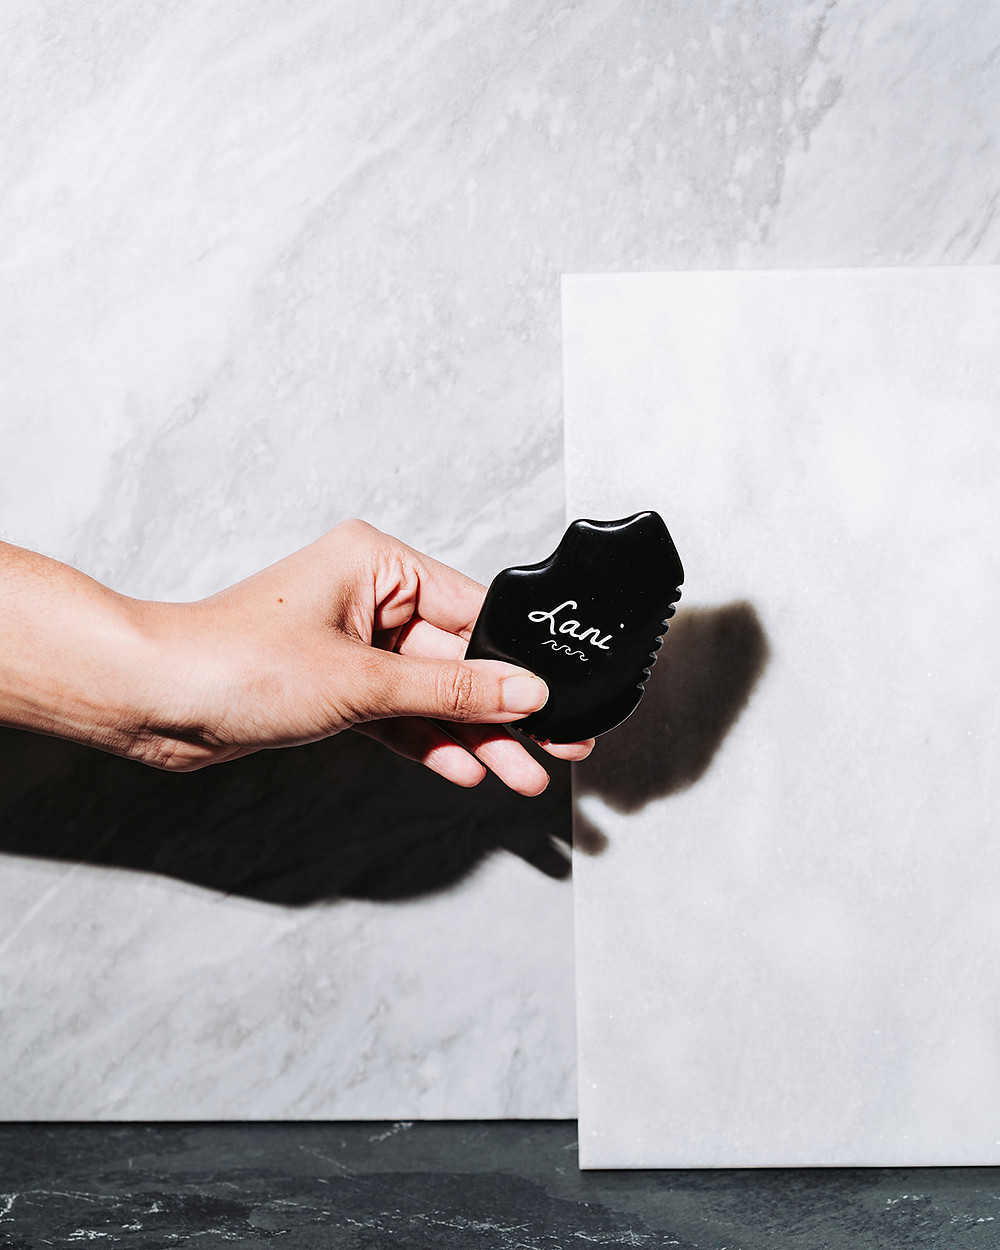 photographer using shadows and backdrops to make product photo of massage stone stand out